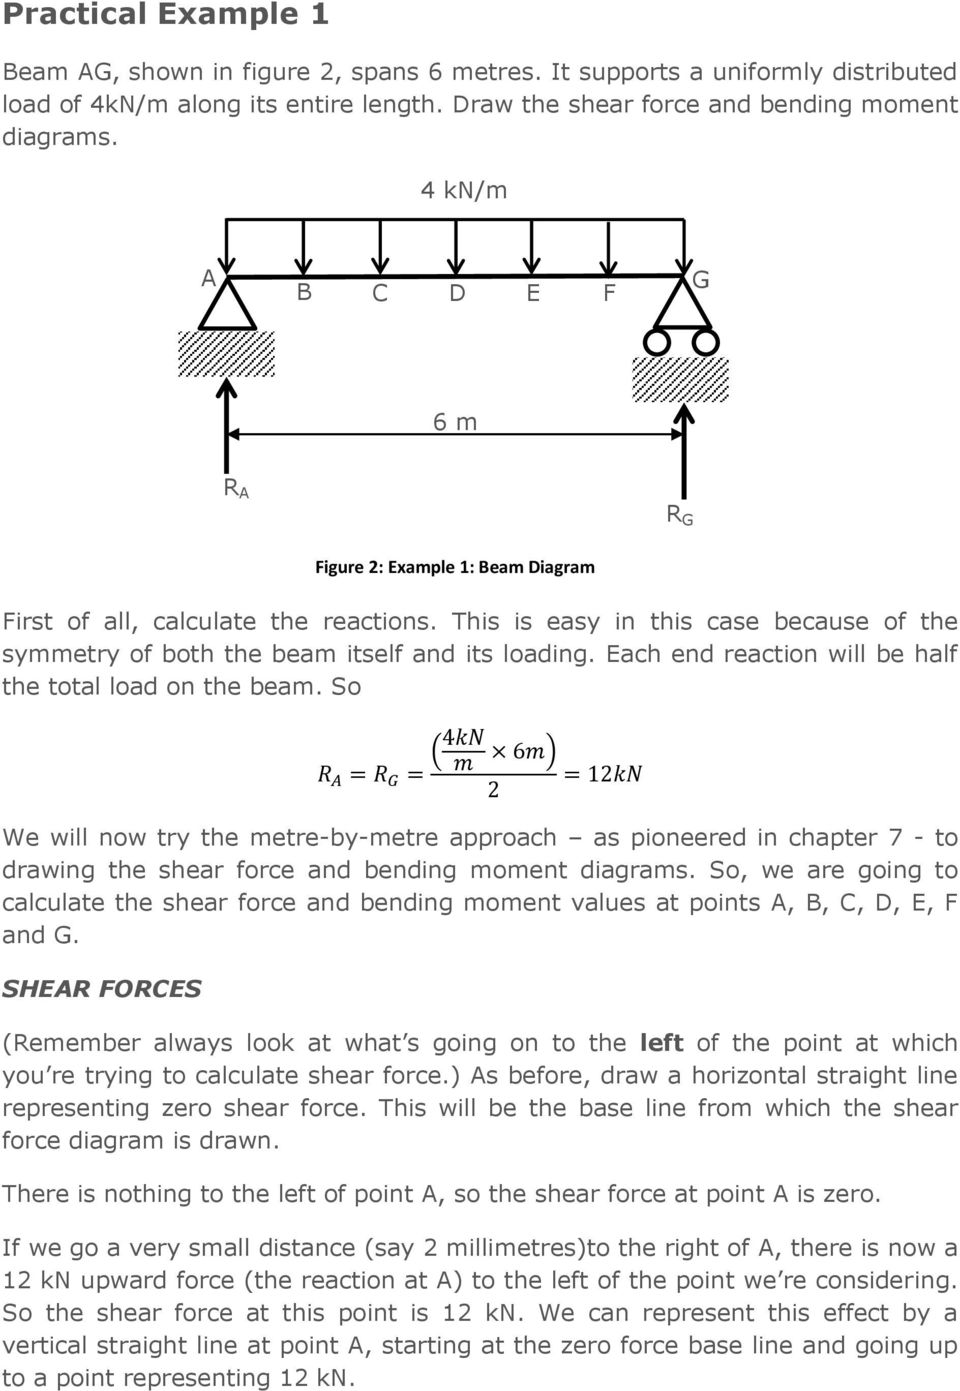 Chapter 8 Shear Force And Bending Moment Diagrams For Uniformly Beam Formulas With Each End Reaction Will Be Half The Total Load On So